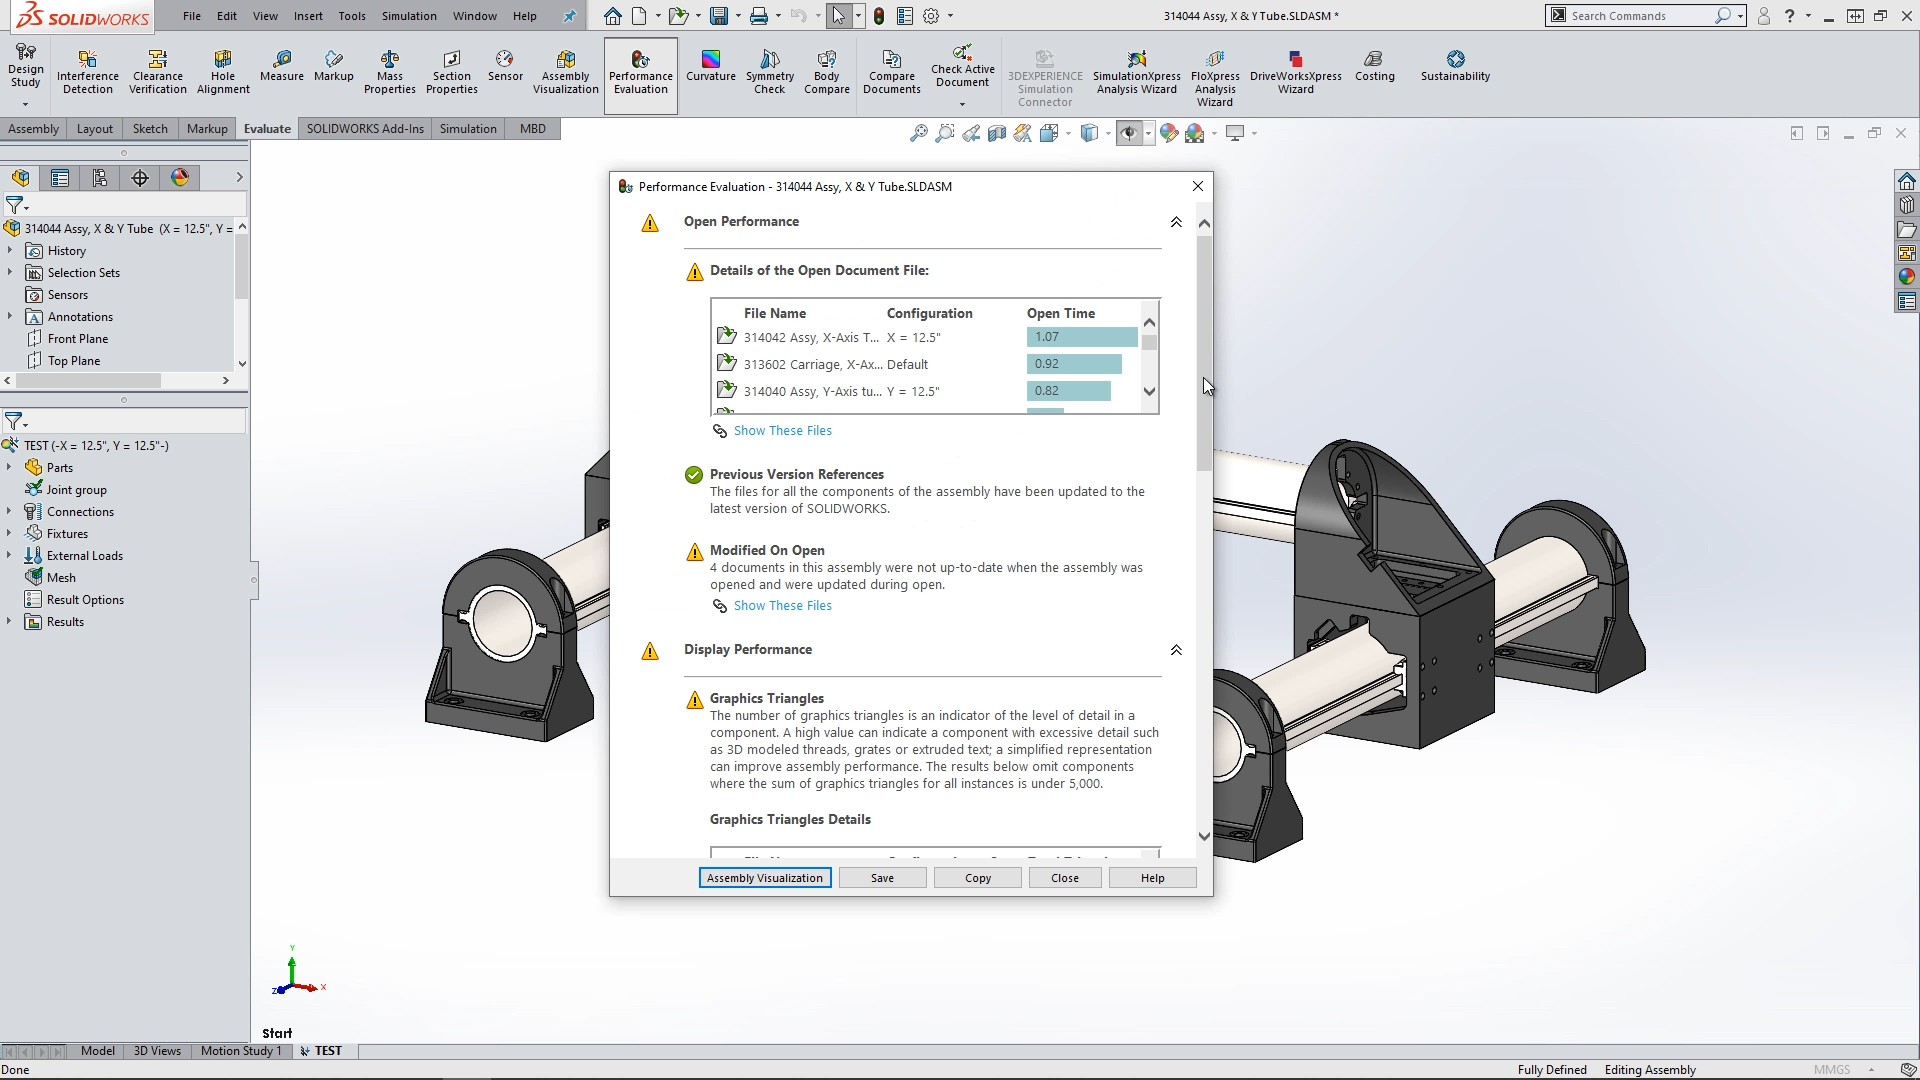 What's New in SOLIDWORKS 2020 - Simulation Evaluator